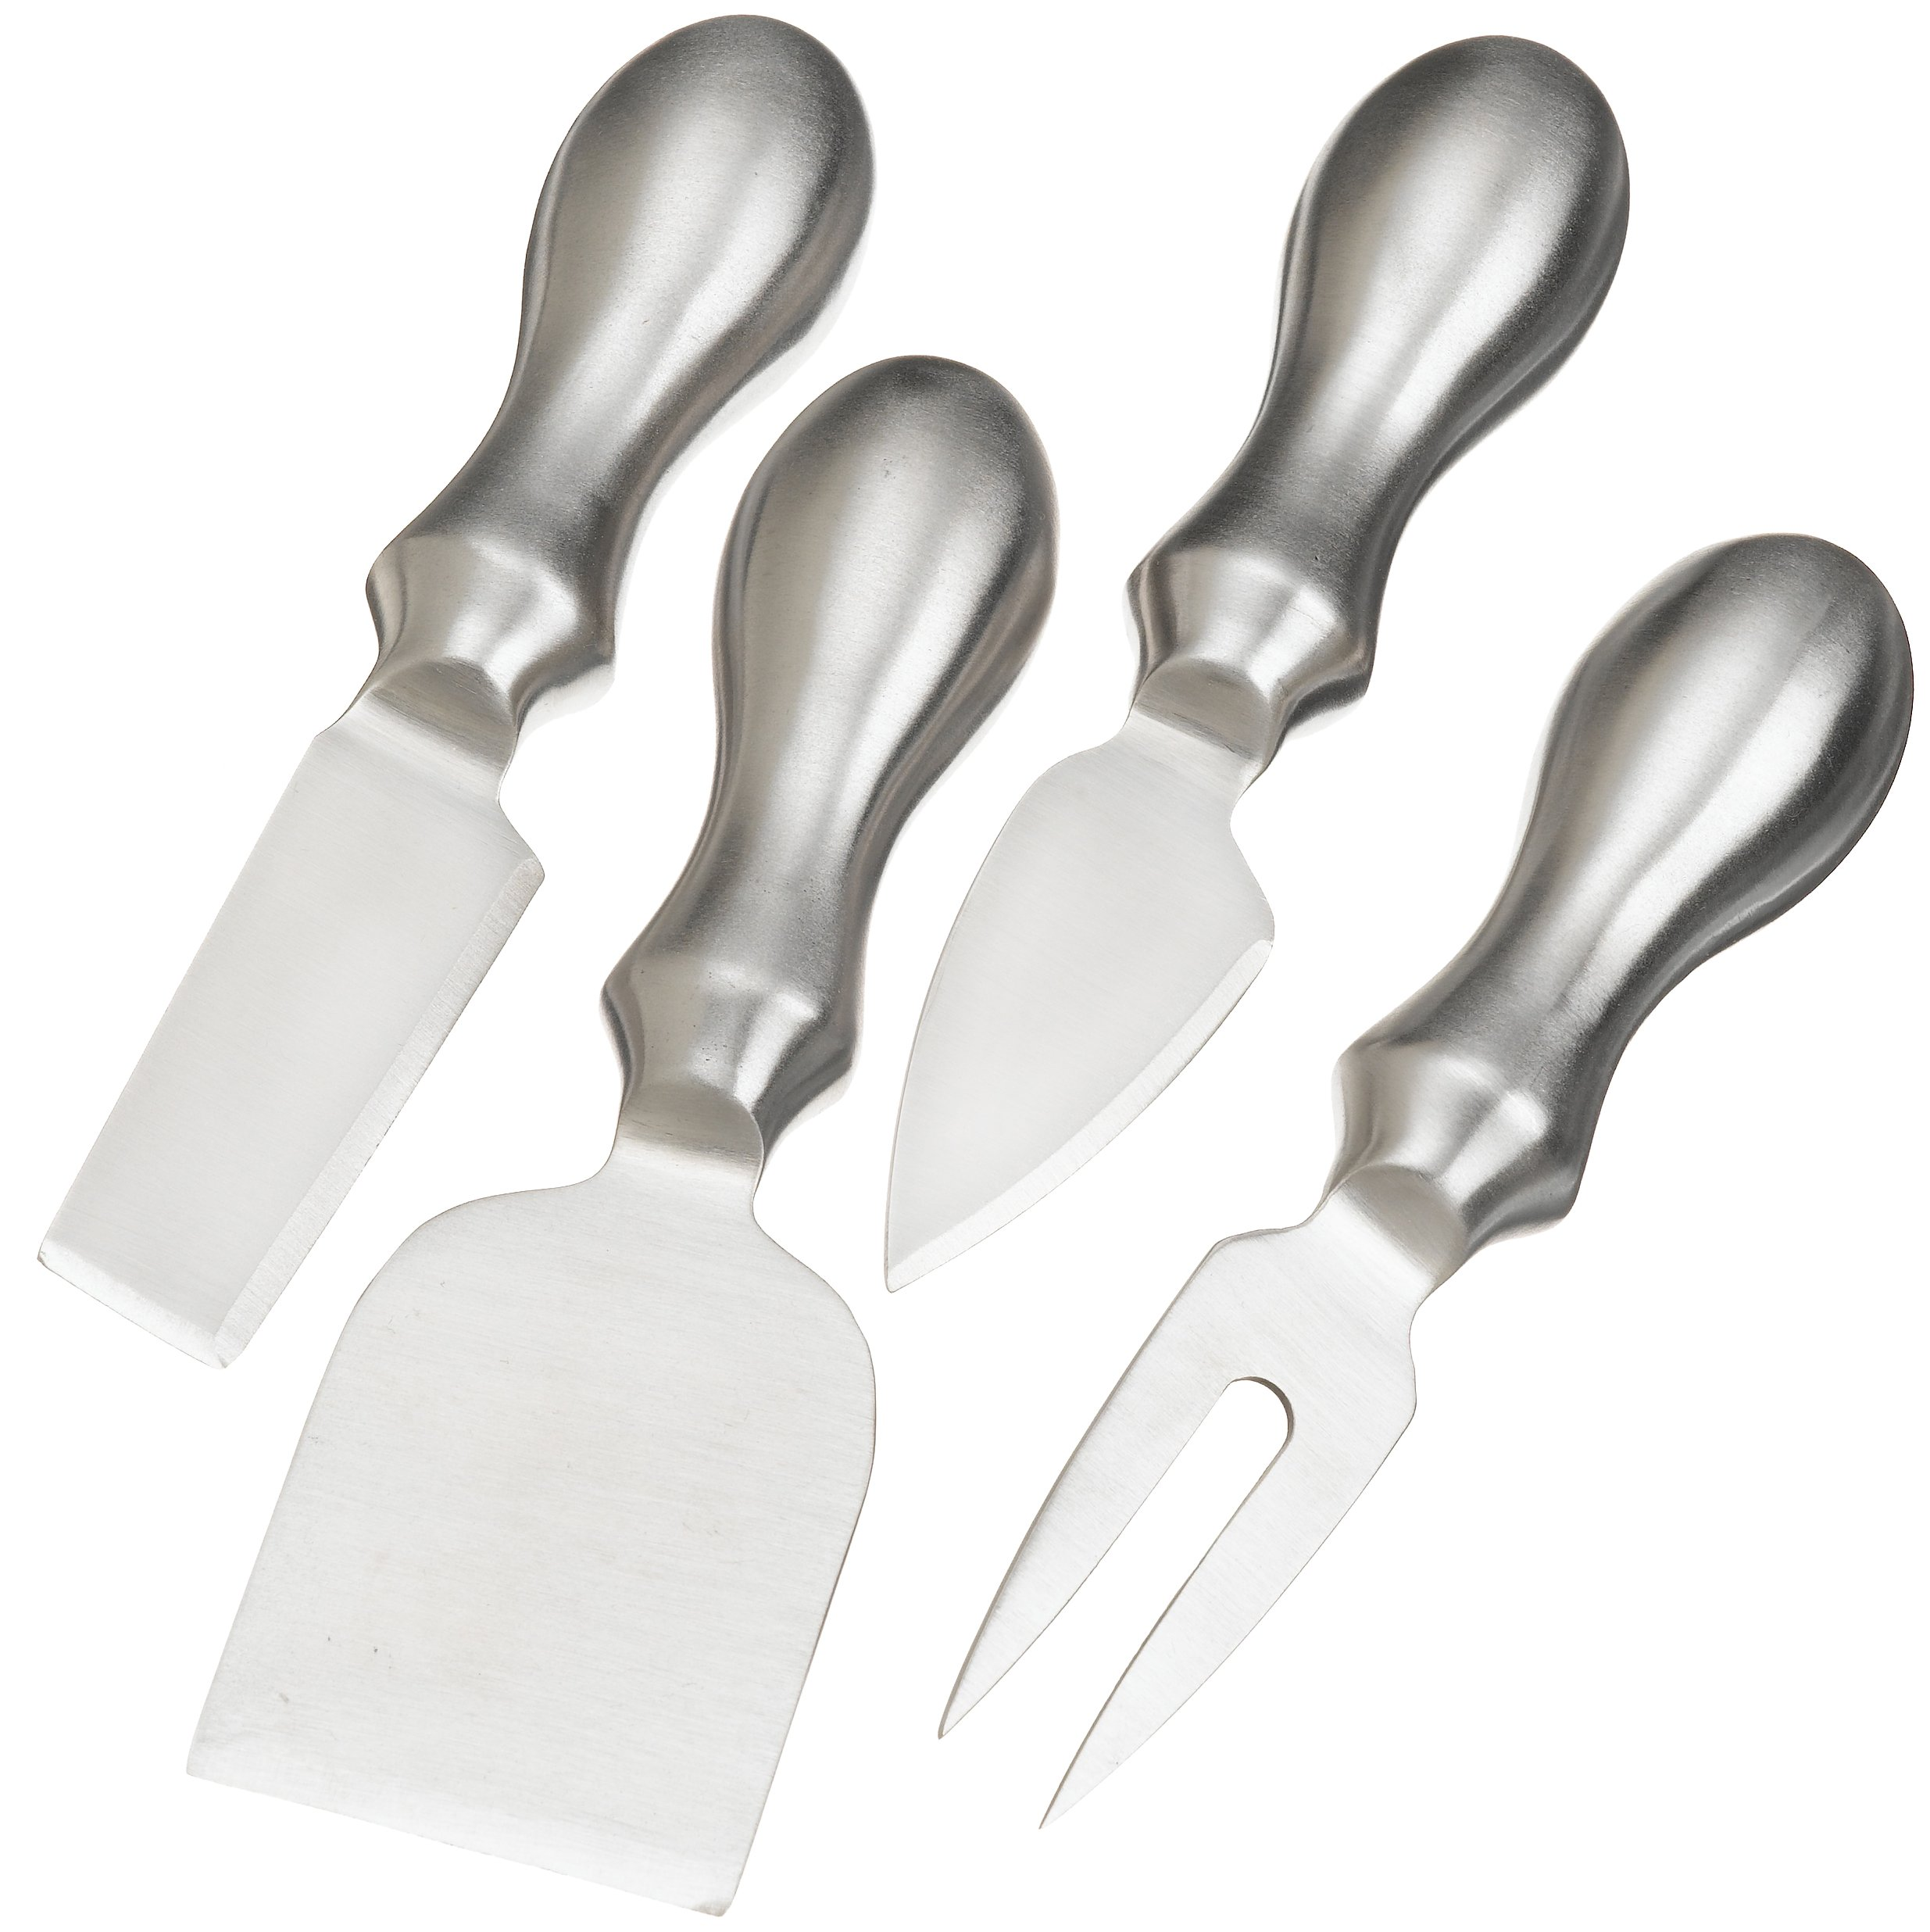 Prodyne K-4-S Stainless Steel Cheese Knives, Set of 4